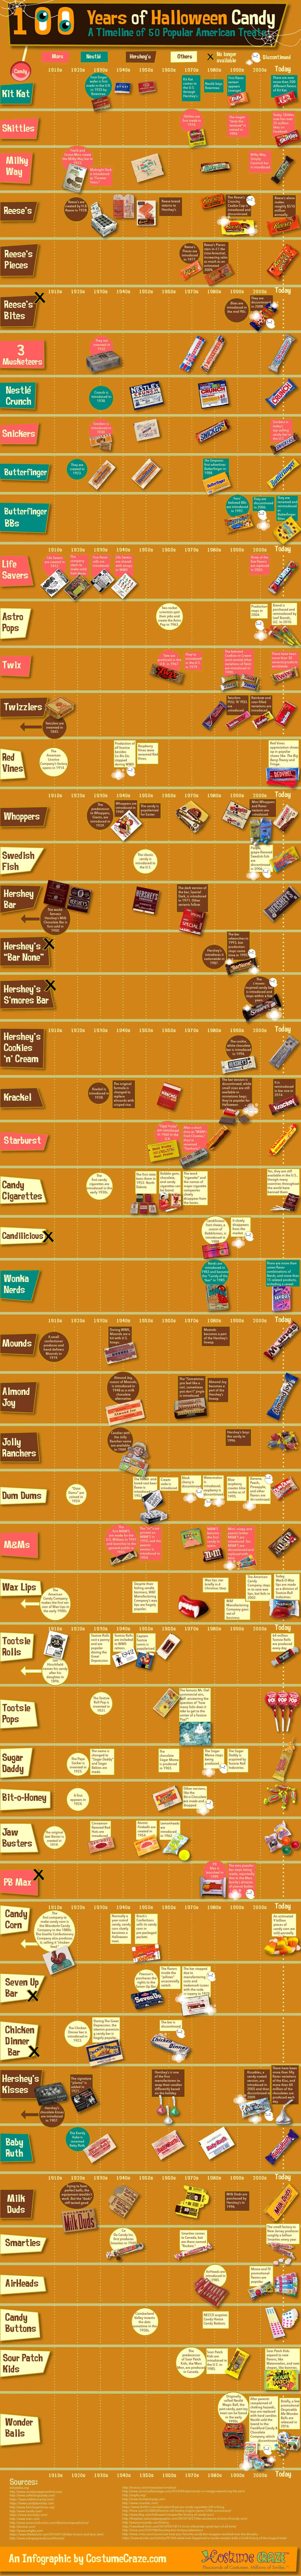 100 Years of Halloween Candy: Fun Facts About Fun Treats | Daily ...